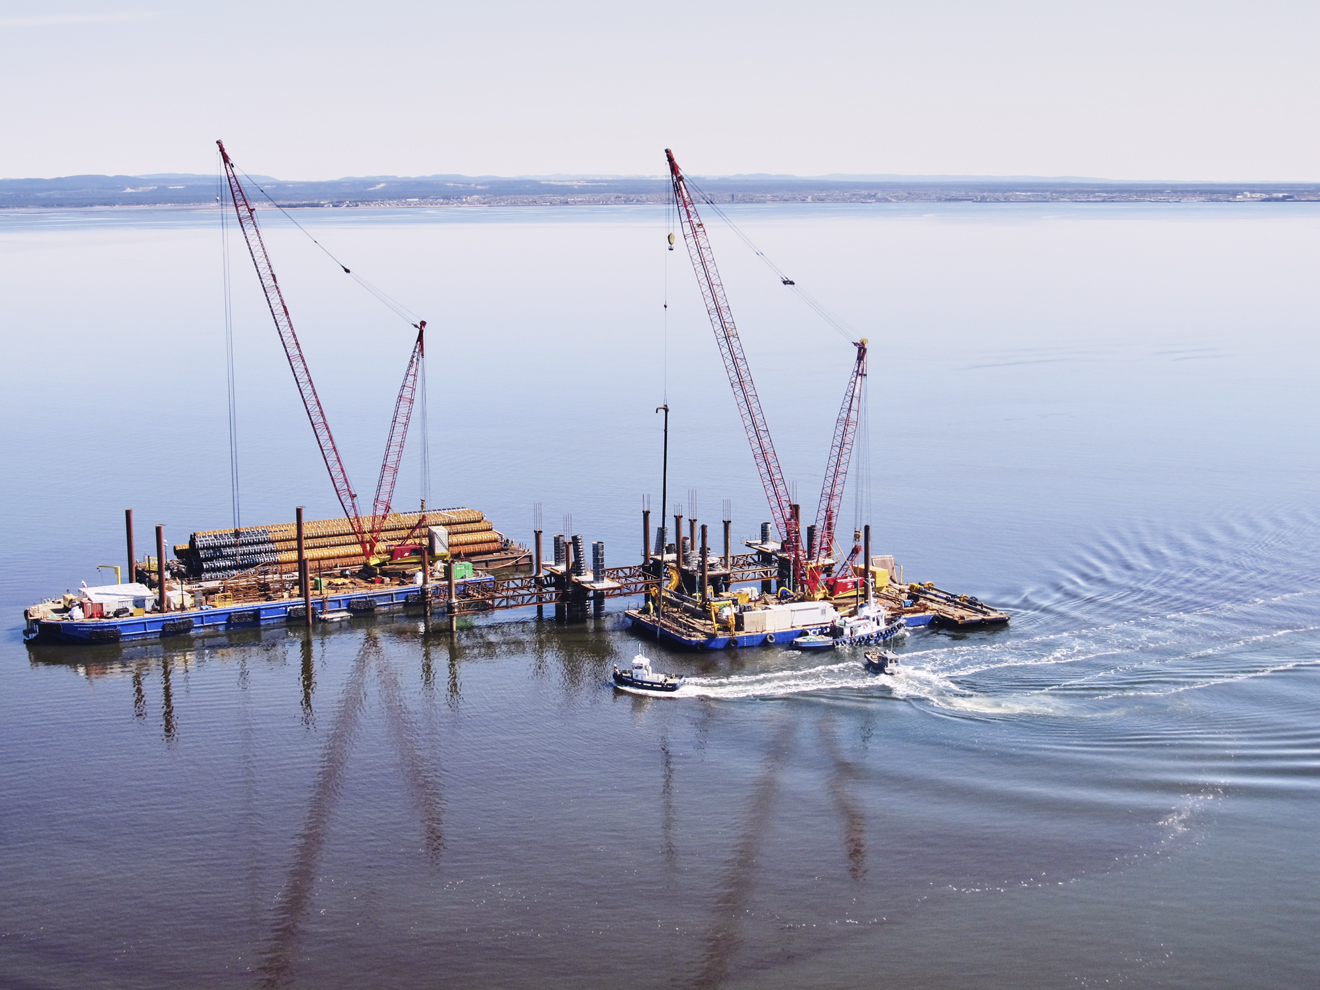 Barge Rental, Workboat & Marine Equipment in Canada | Ocean